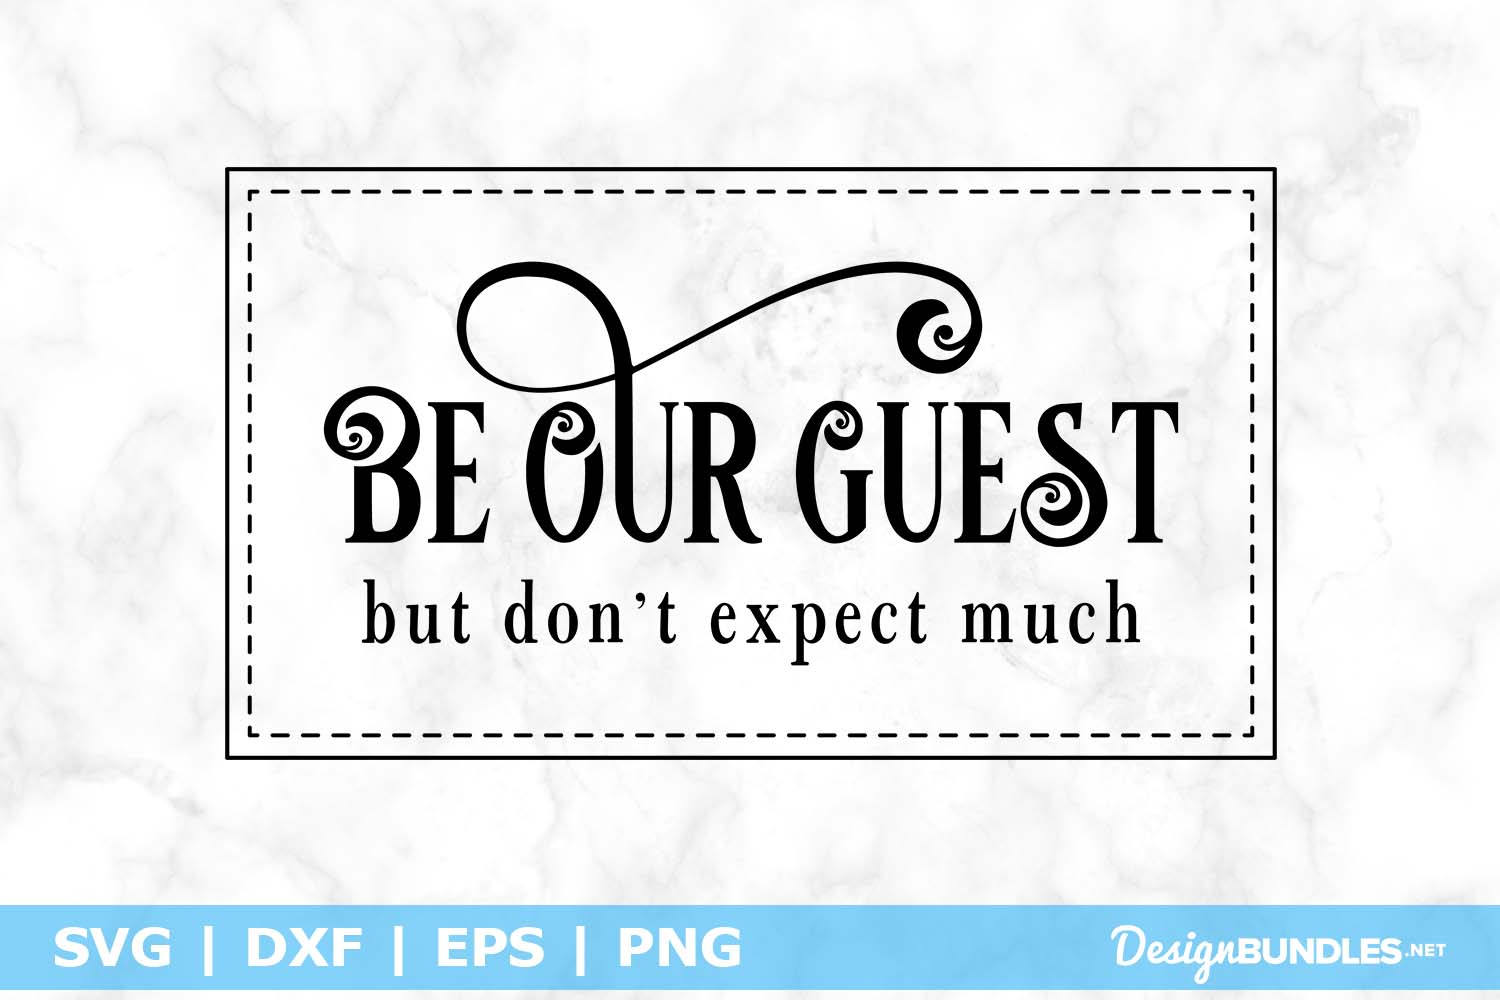 Be Our Guest But Don't Expect Much SVG File example image 1